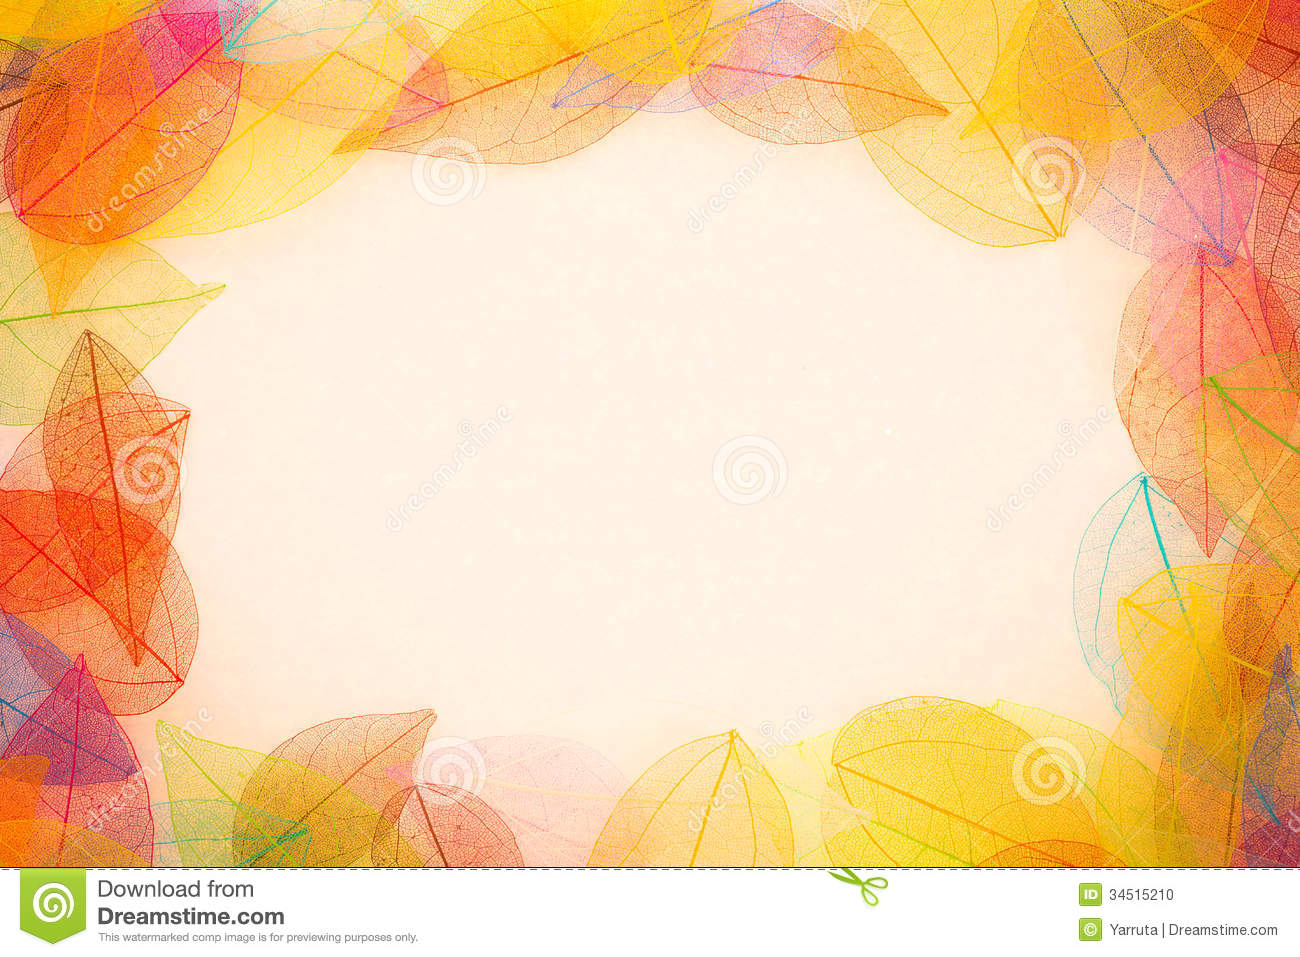 Falling Leaves Wallpaper Free Download Autumn Leaves Frame Stock Photo Image 34515210